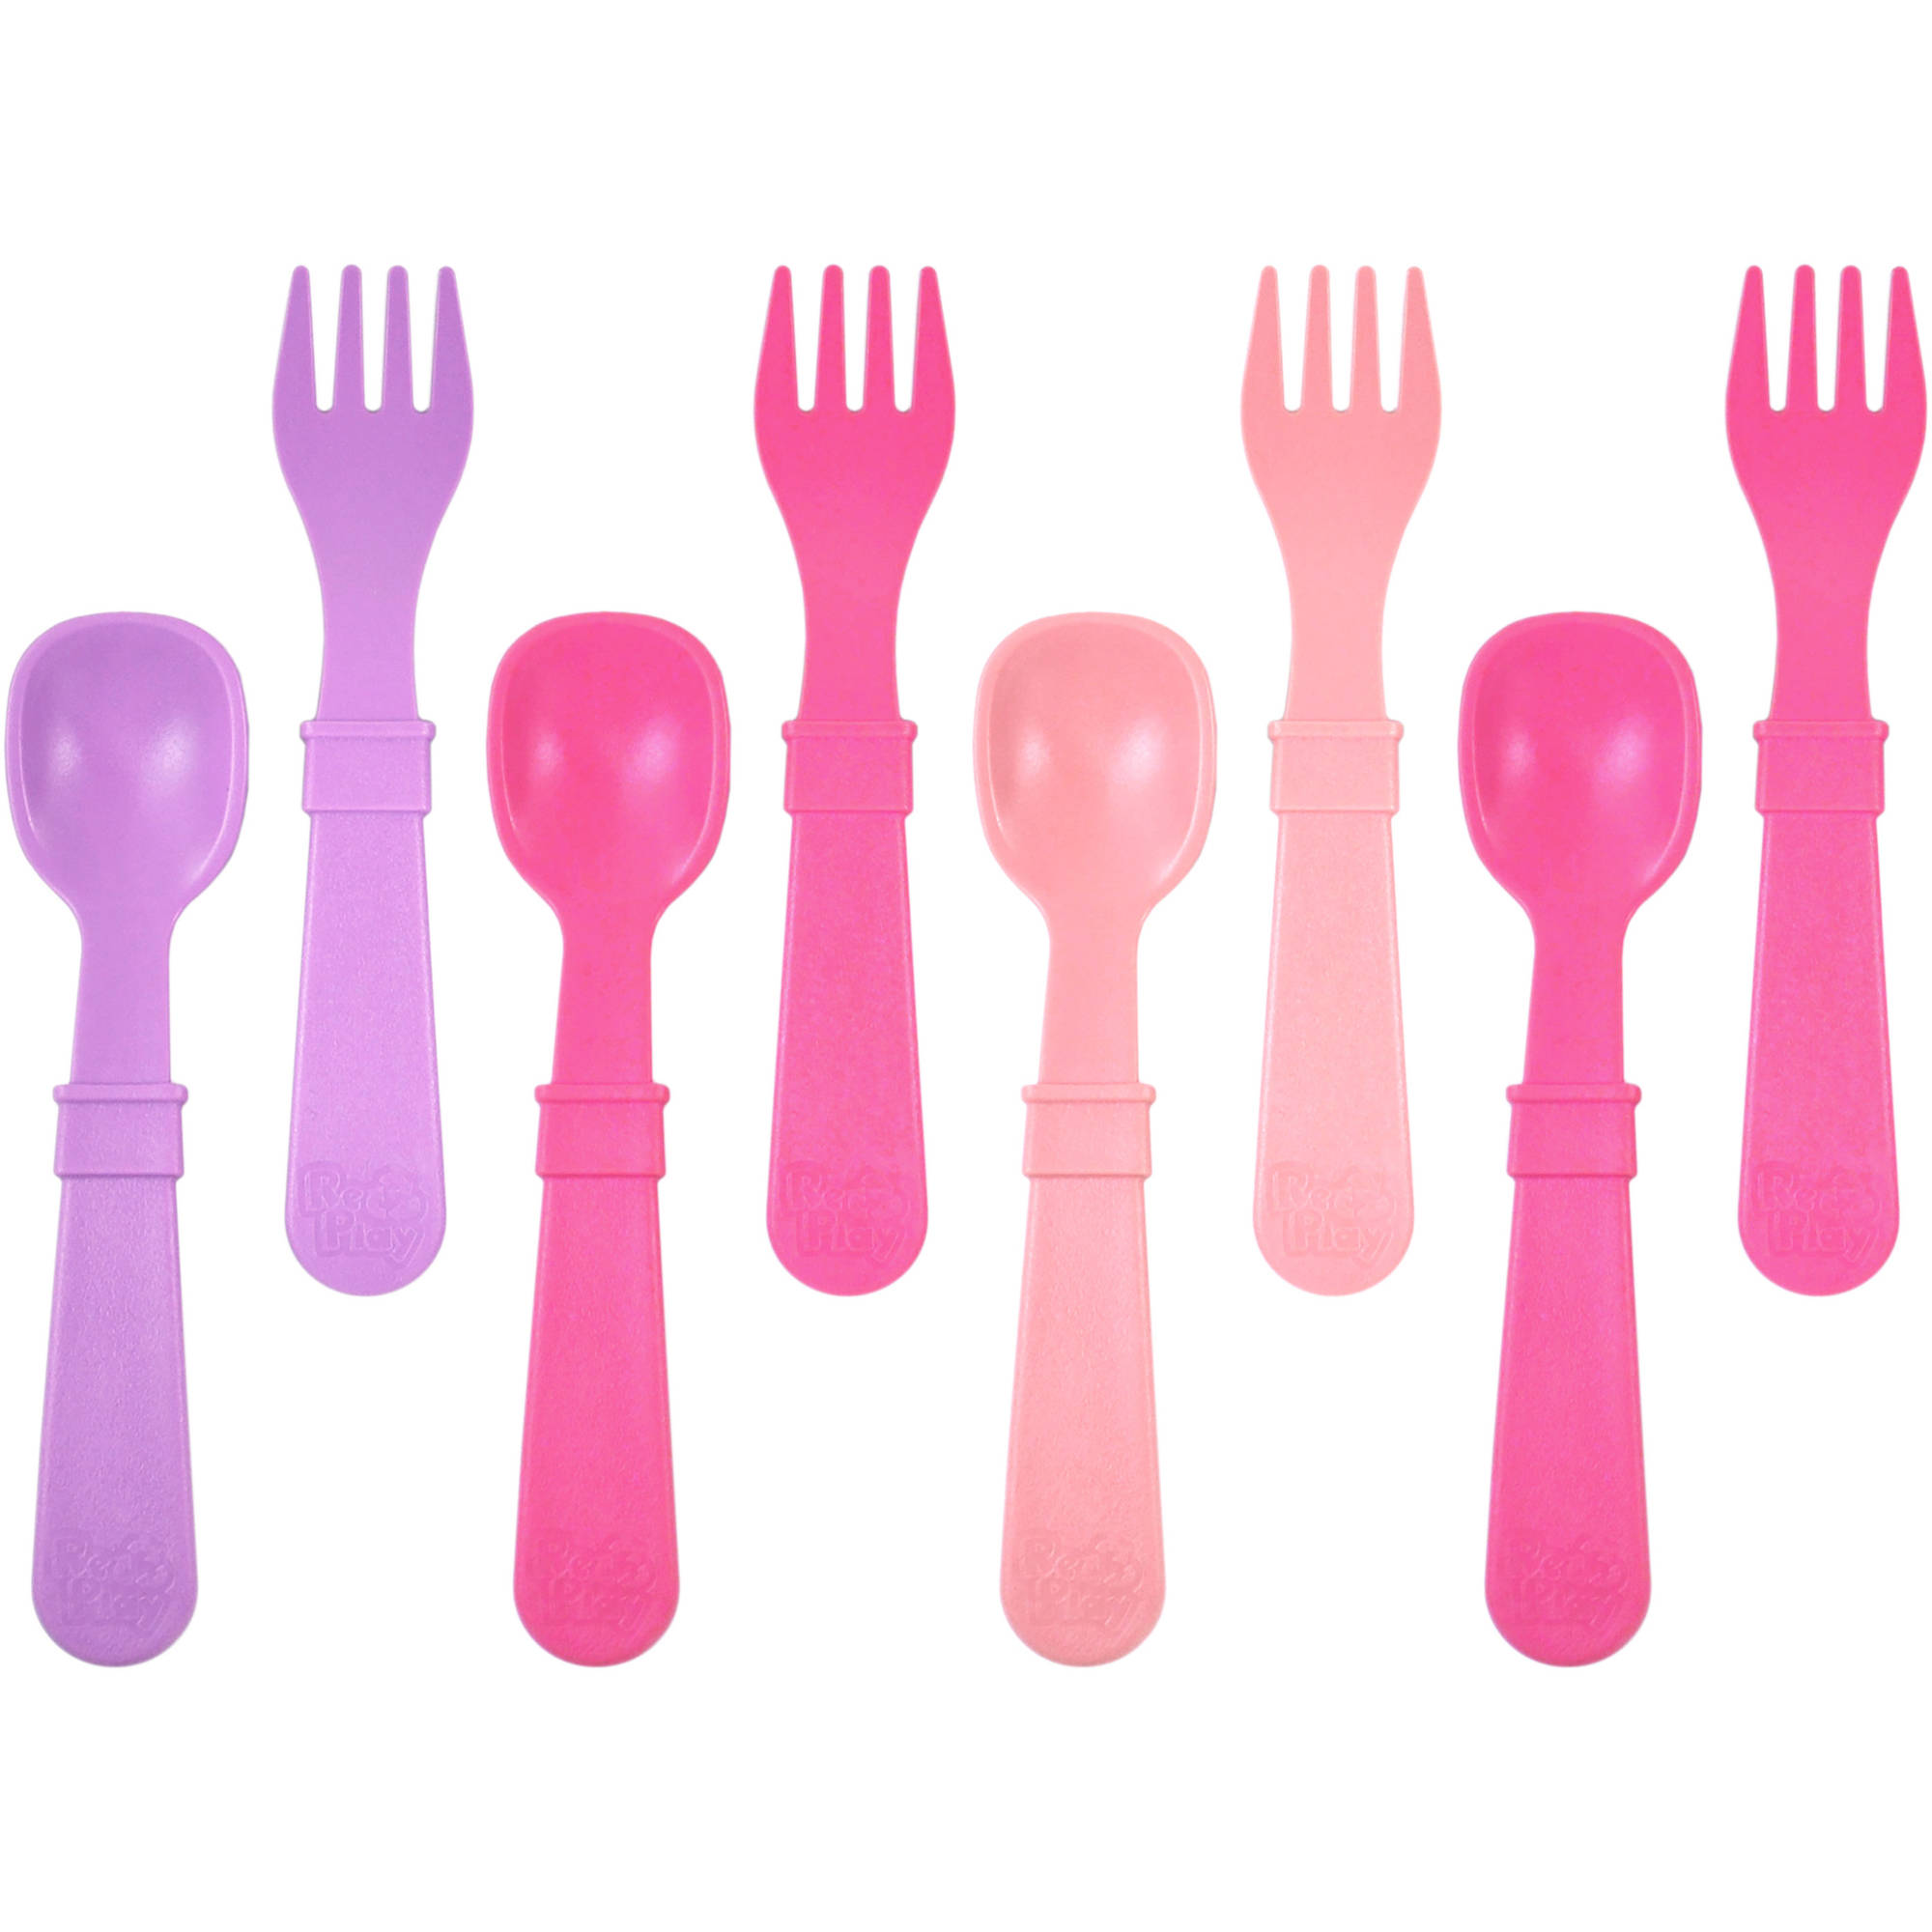 Re-Play 4 Spoons and 4 Forks, BPA-Free